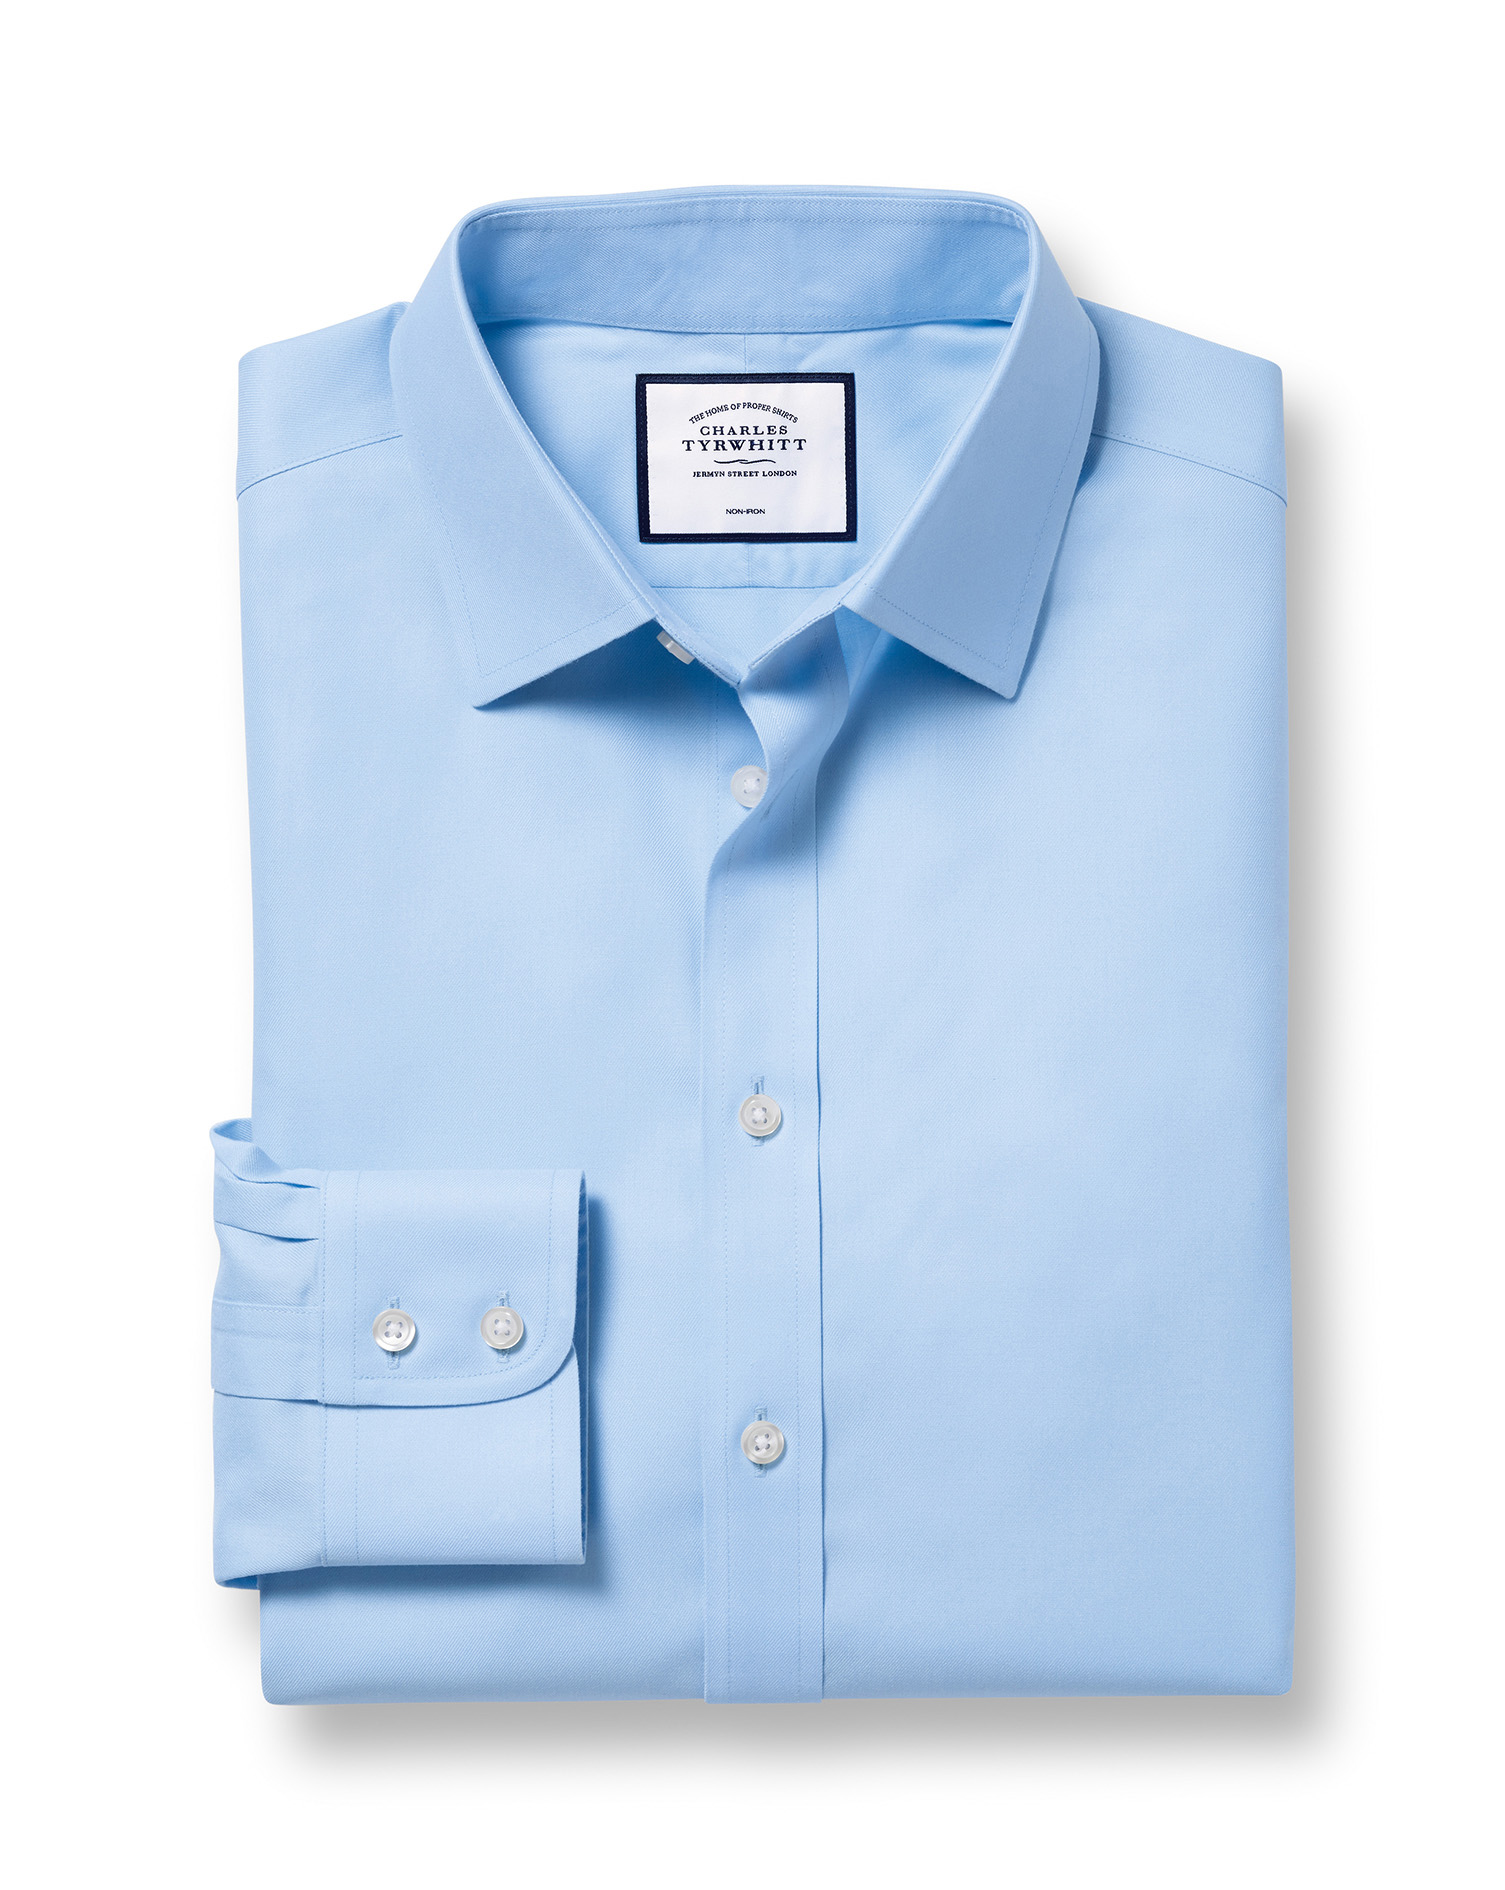 Classic Fit Sky Blue Non-Iron Twill Cotton Formal Shirt Double Cuff Size 15.5/34 by Charles Tyrwhitt